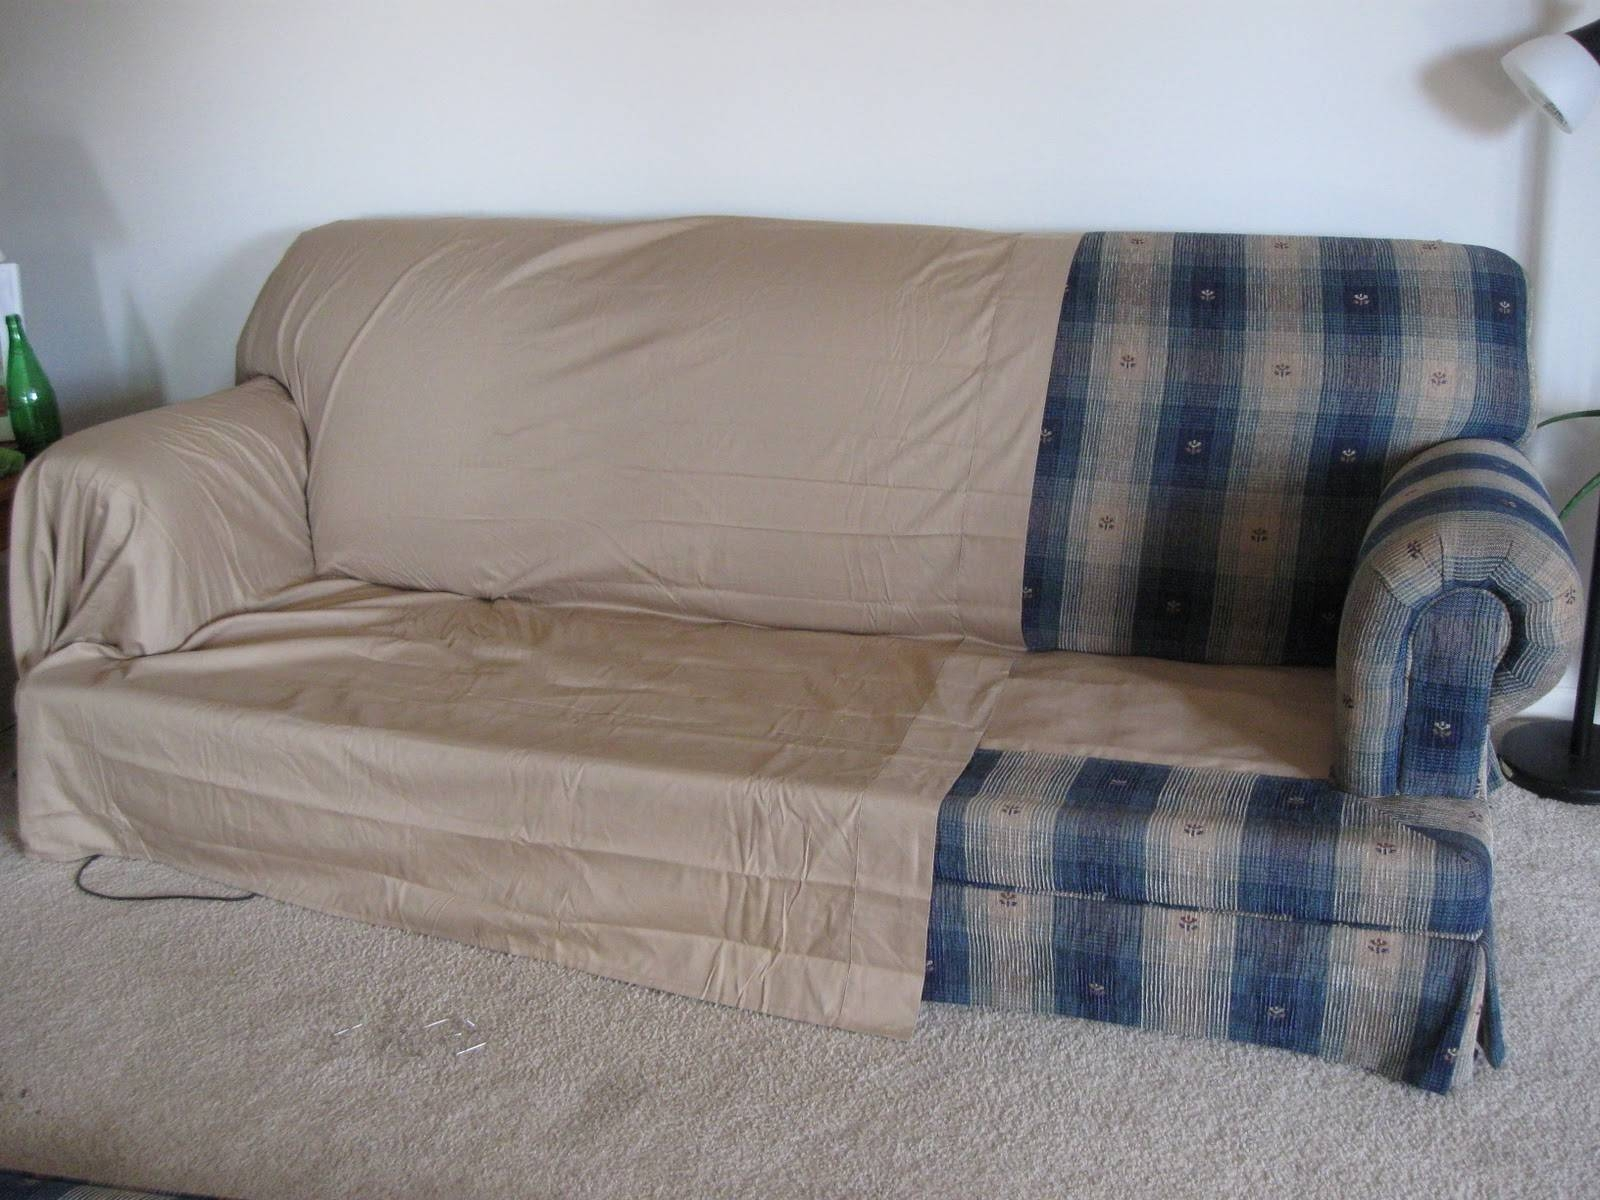 Sofas Center : Unforgettable Sofa Slipcovers Cheap Photo Ideas intended for Clearance Sofa Covers (Image 28 of 30)